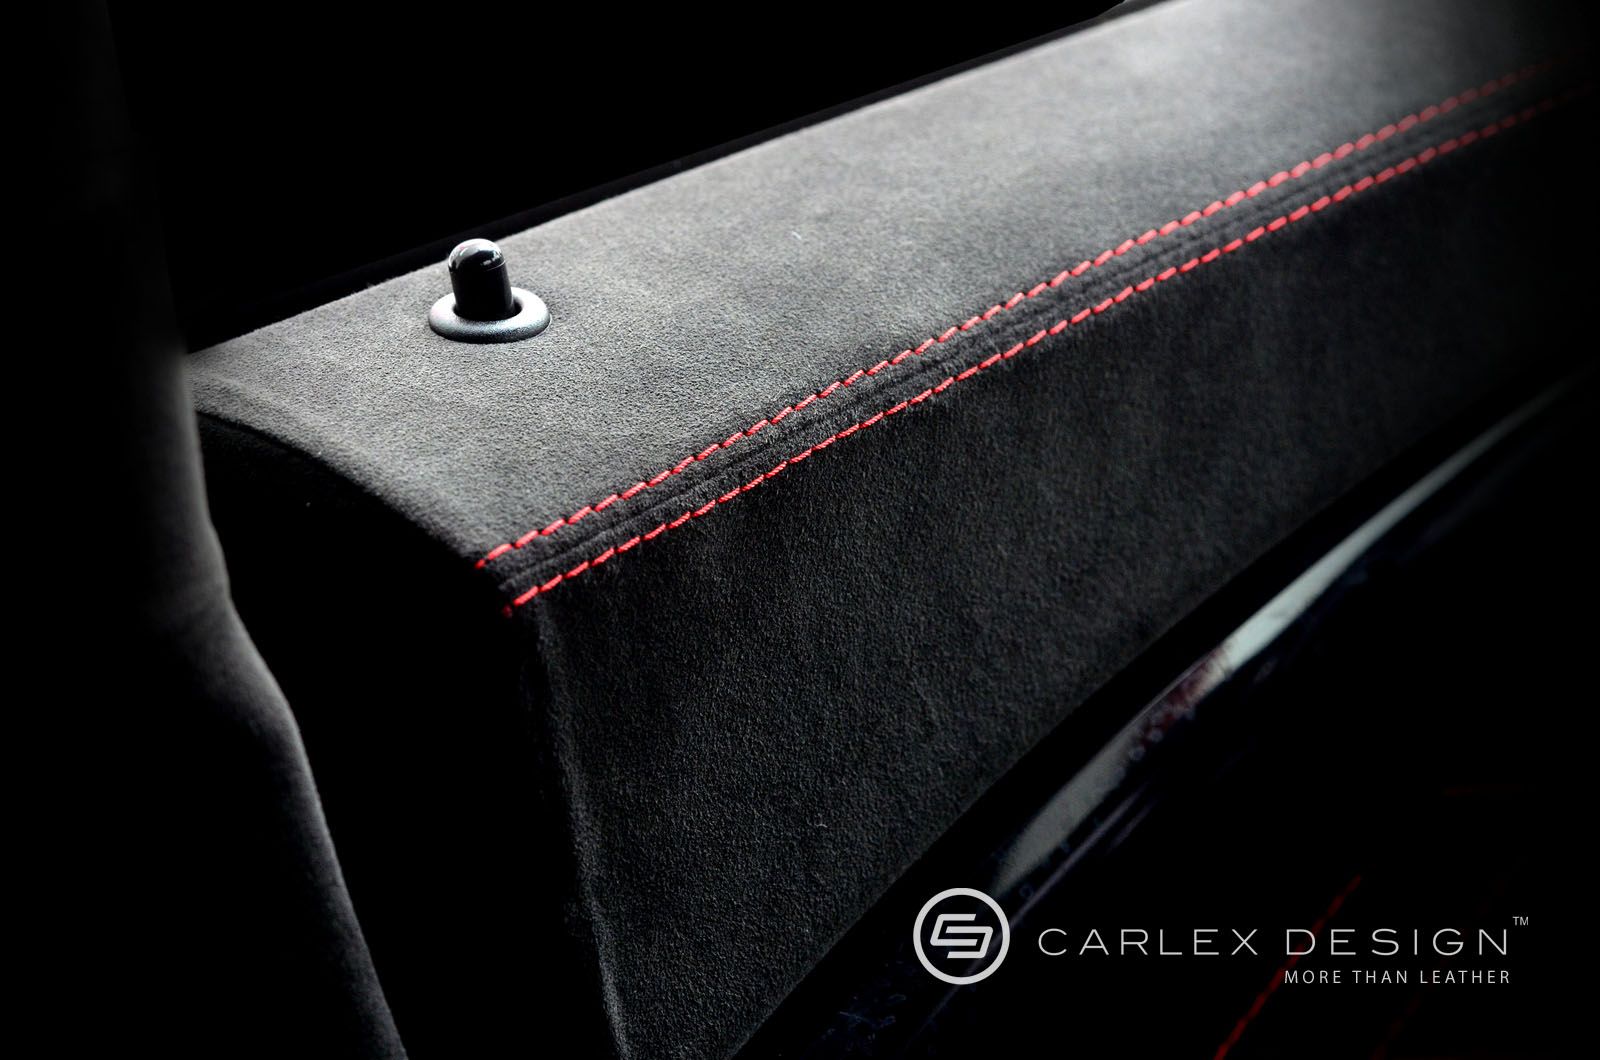 Carlex Design's MINI Cooper S Custom Interior - autoevolution